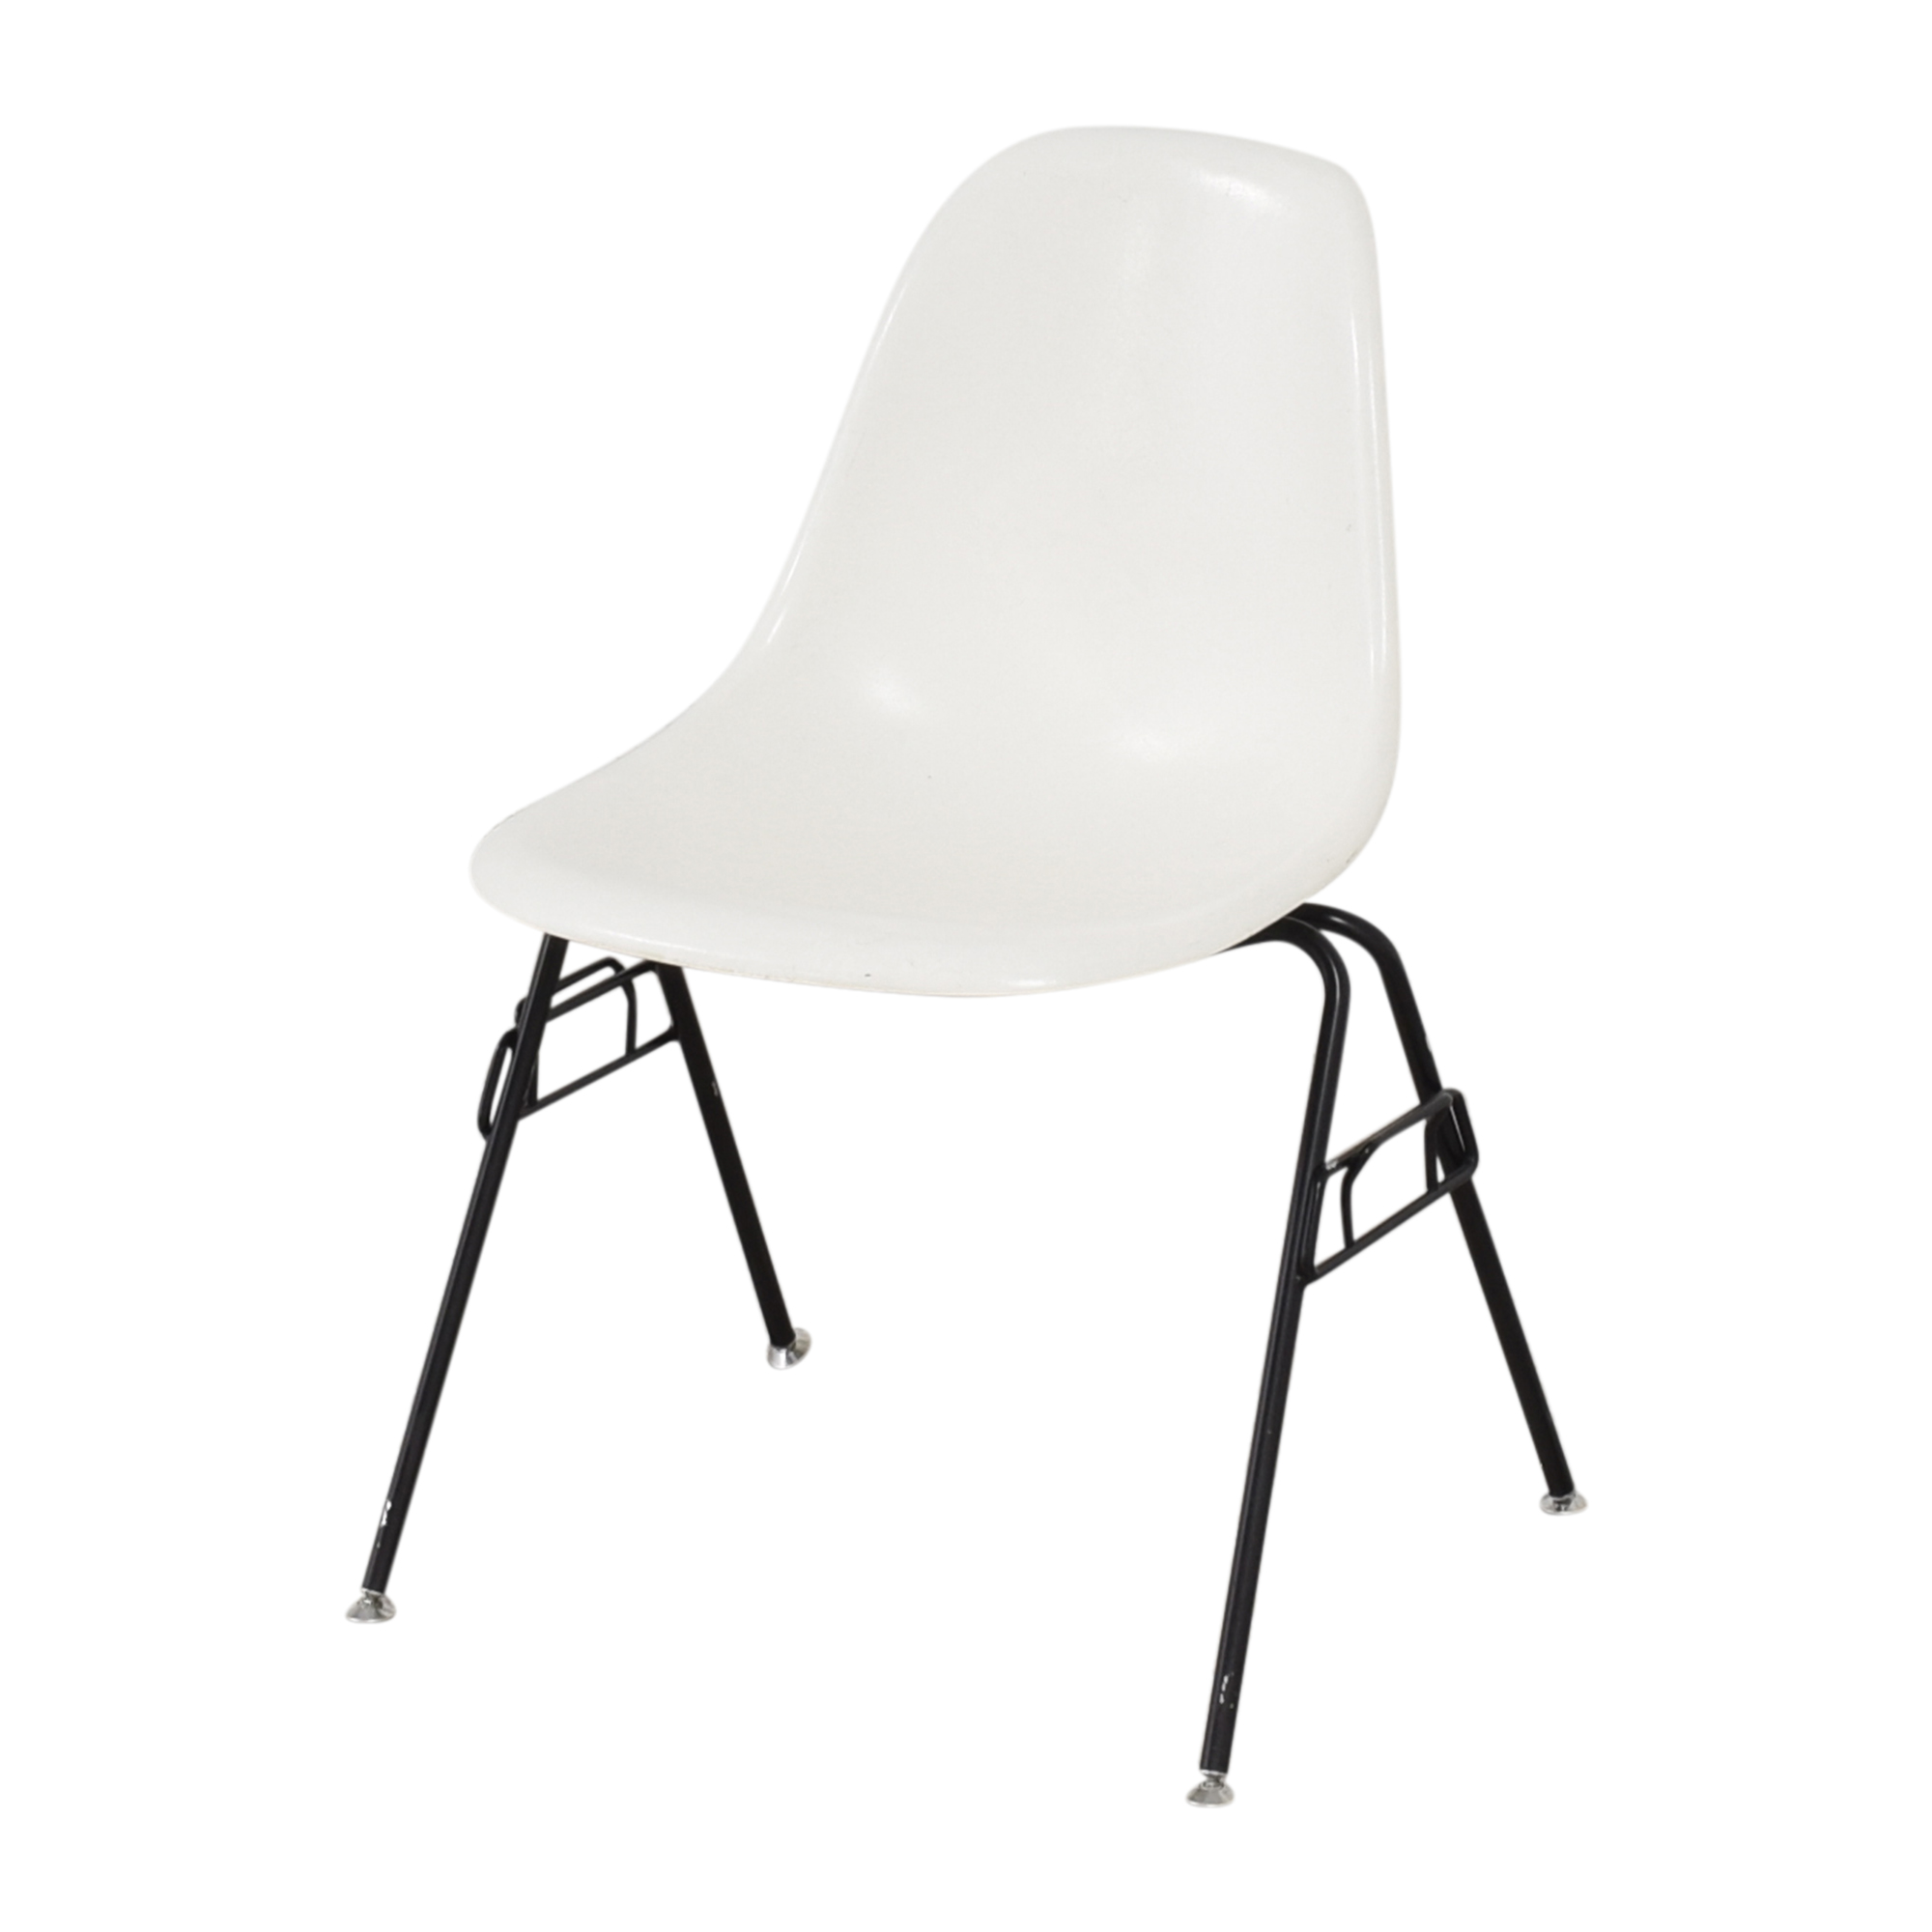 Modernica Modernica Case Study Furniture Side Shell Stacking Chairs ma